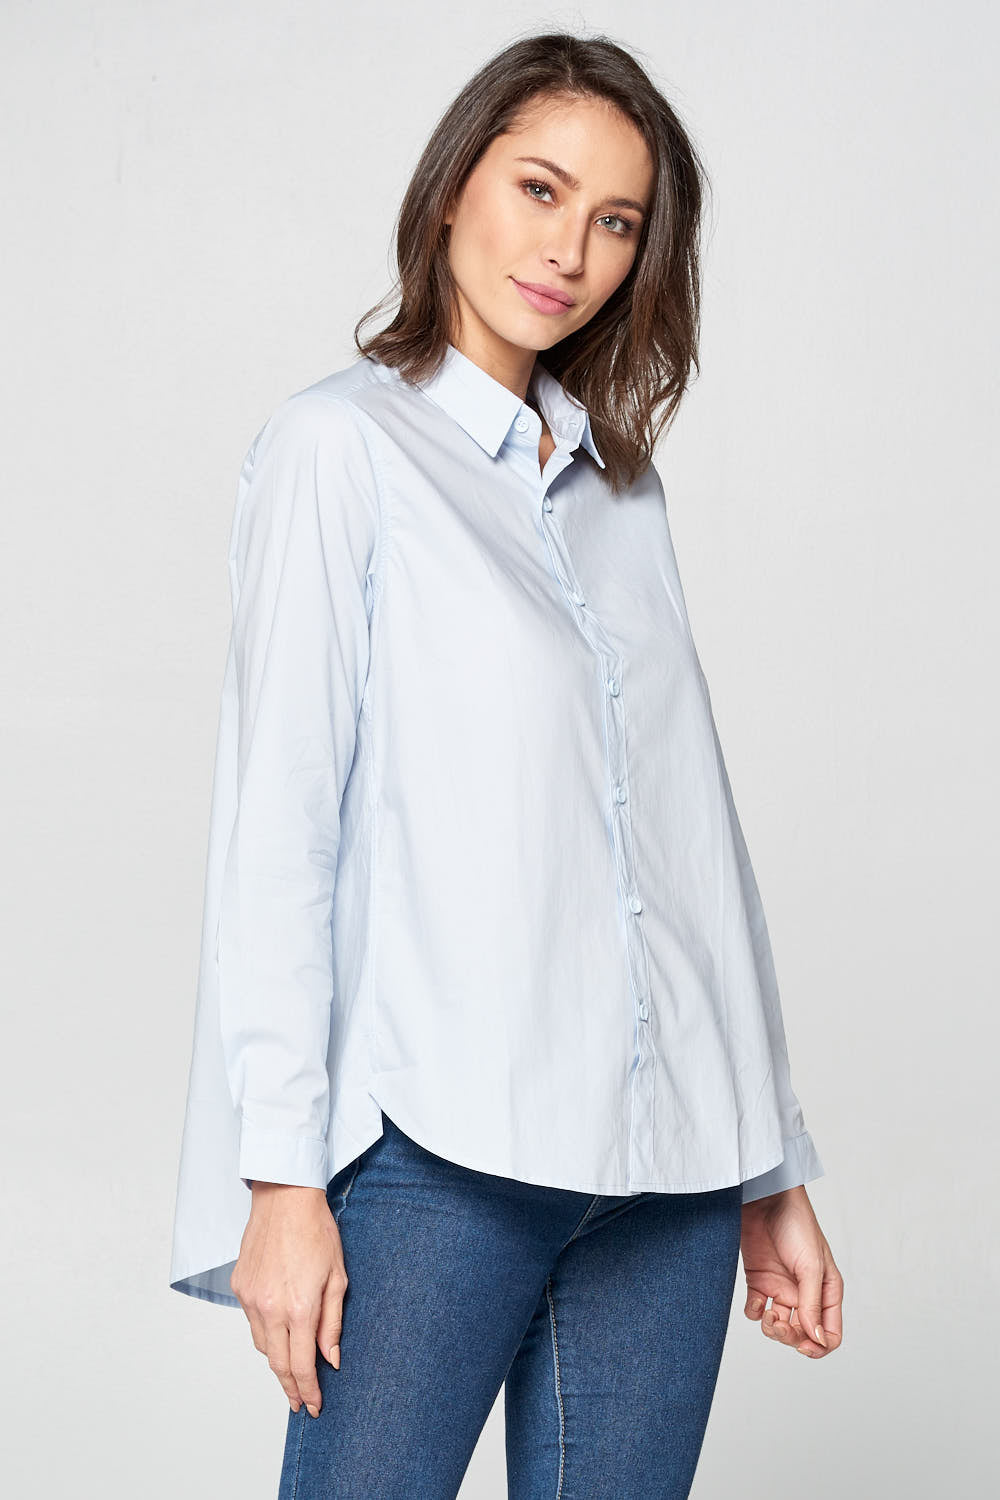 85499cb86521ec LONG SLEEVE BUTTON UP COLLARED SHIRT – Renee Collection